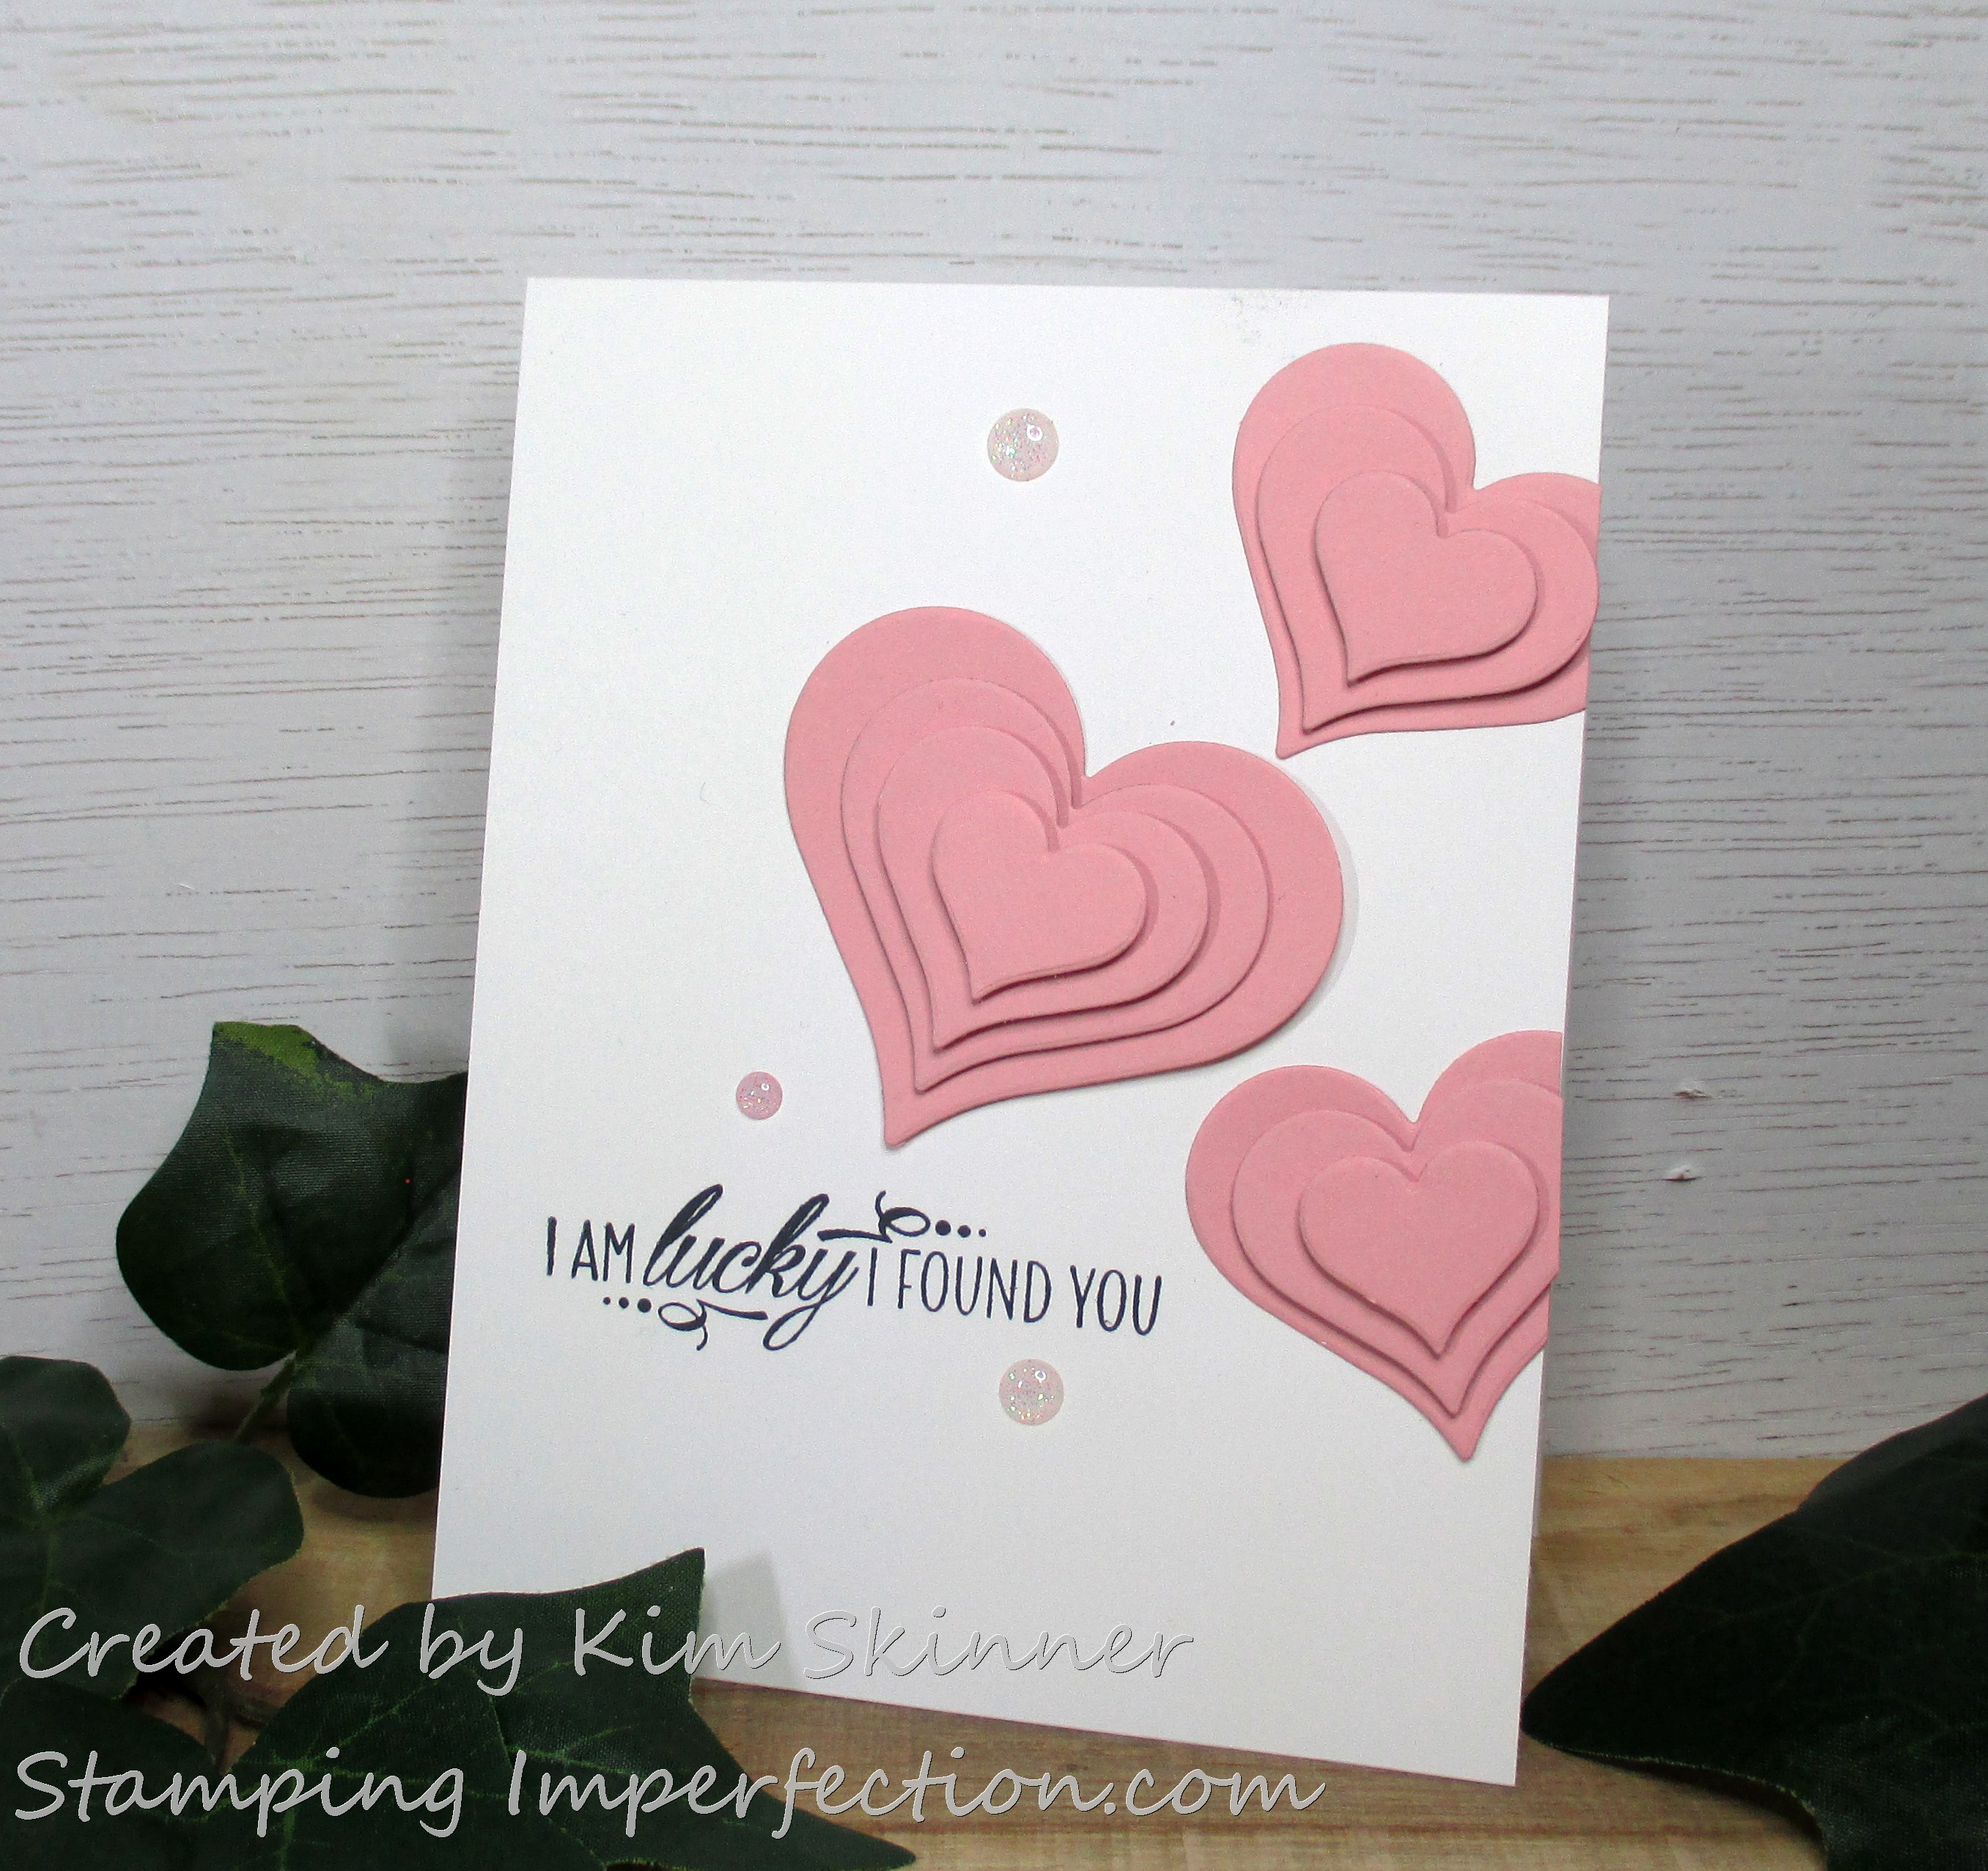 Stamping Imperfection Advanced Die Cutting